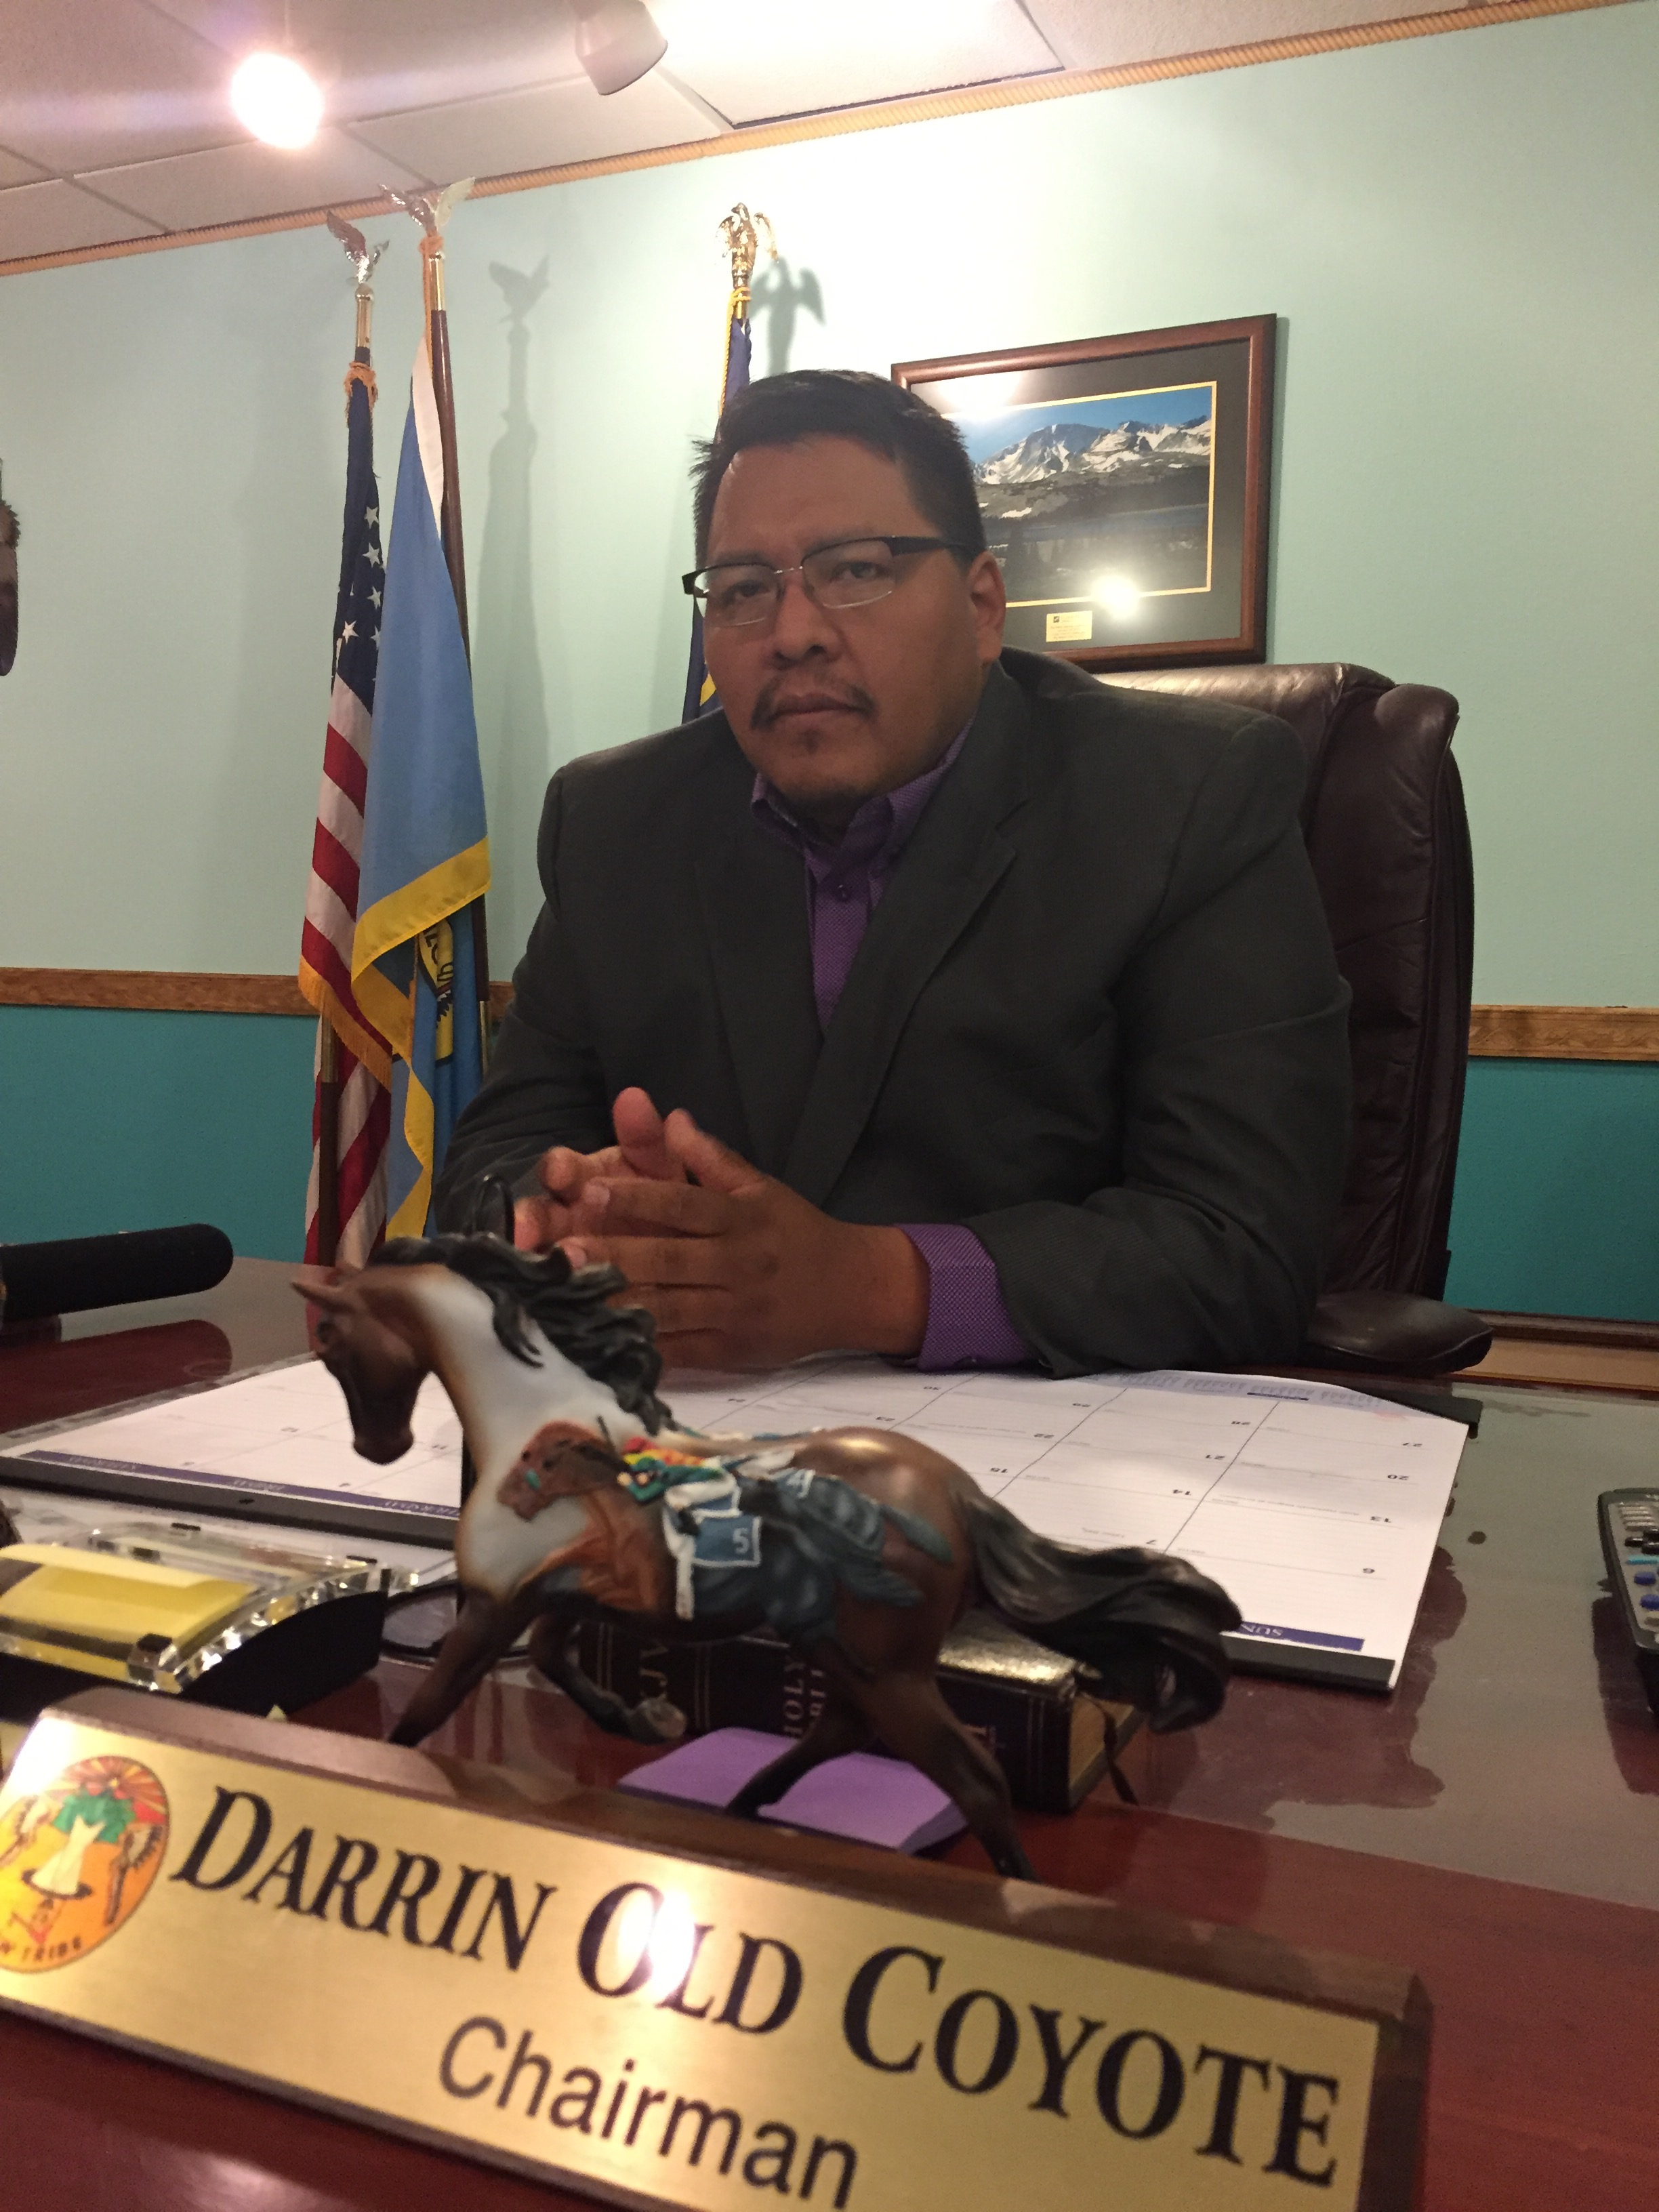 Darrin Old Coyote is chairman of the Apsaalooke Nation, also known as the Crow Tribe.